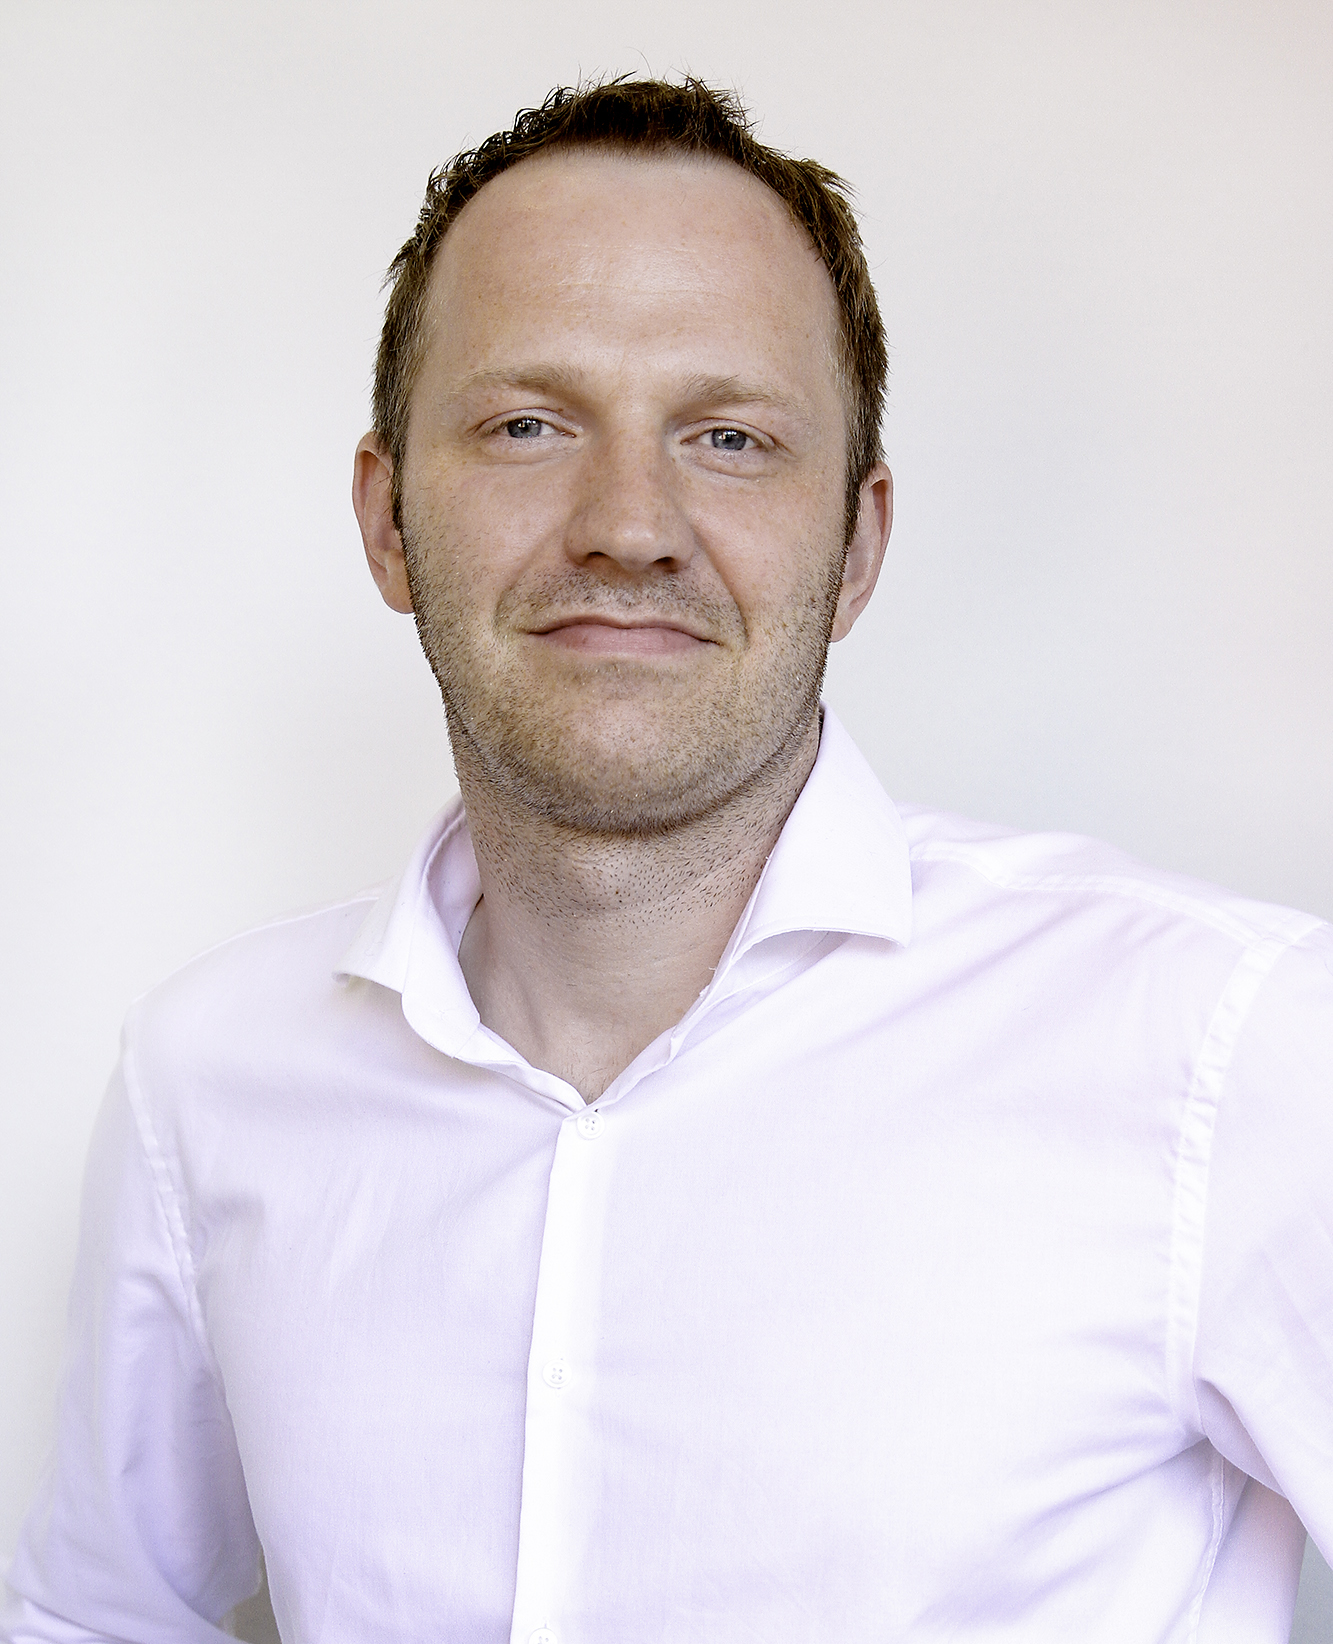 Jan Tänzler, Head of Payroll